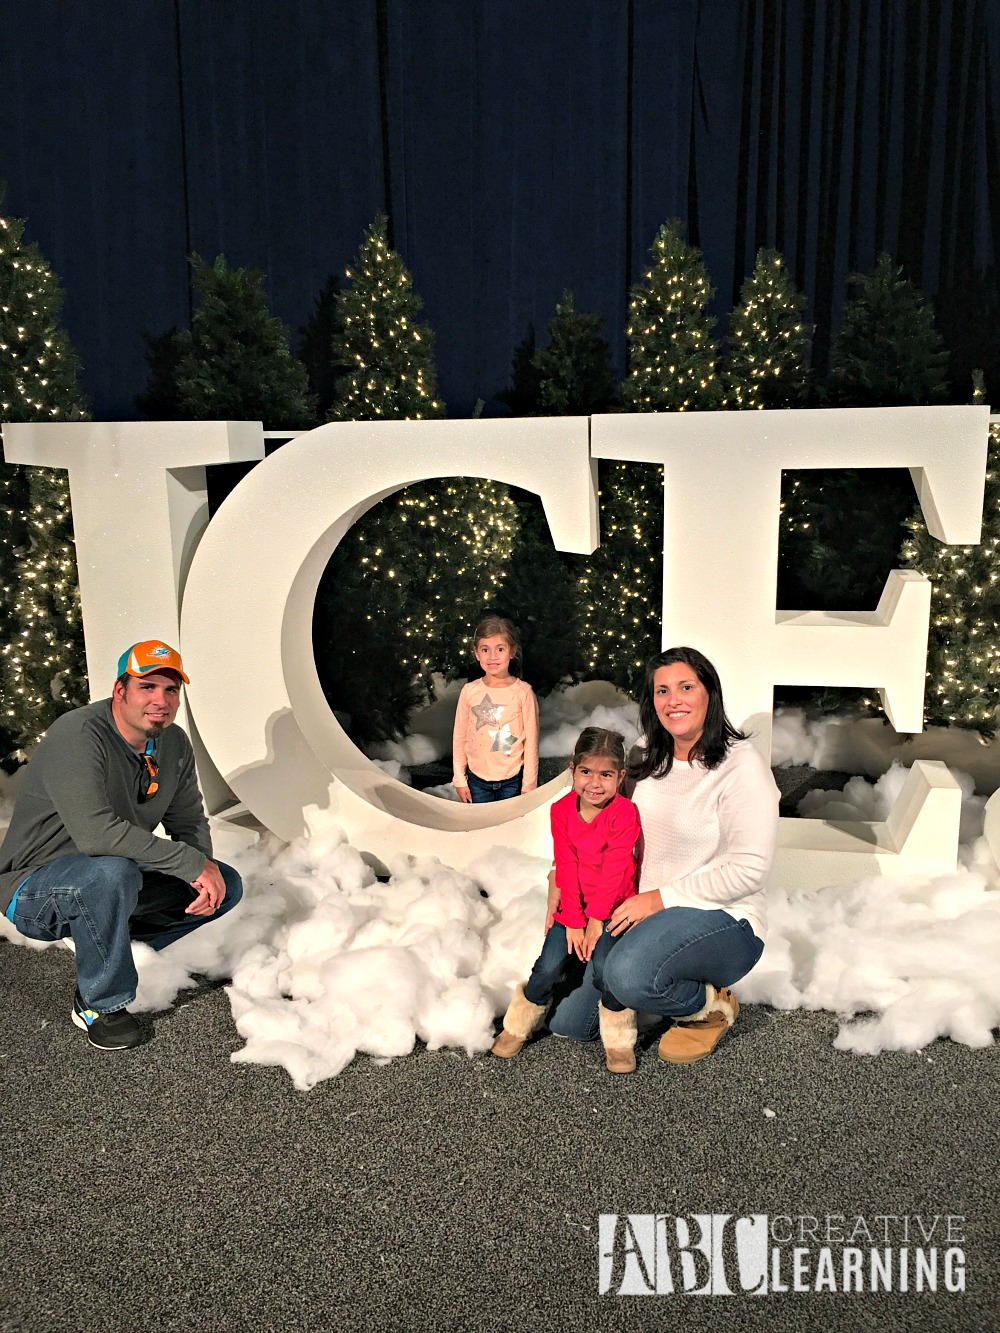 7 Reasons to Visit Gaylord Palms and ICE During Christmas Birthday